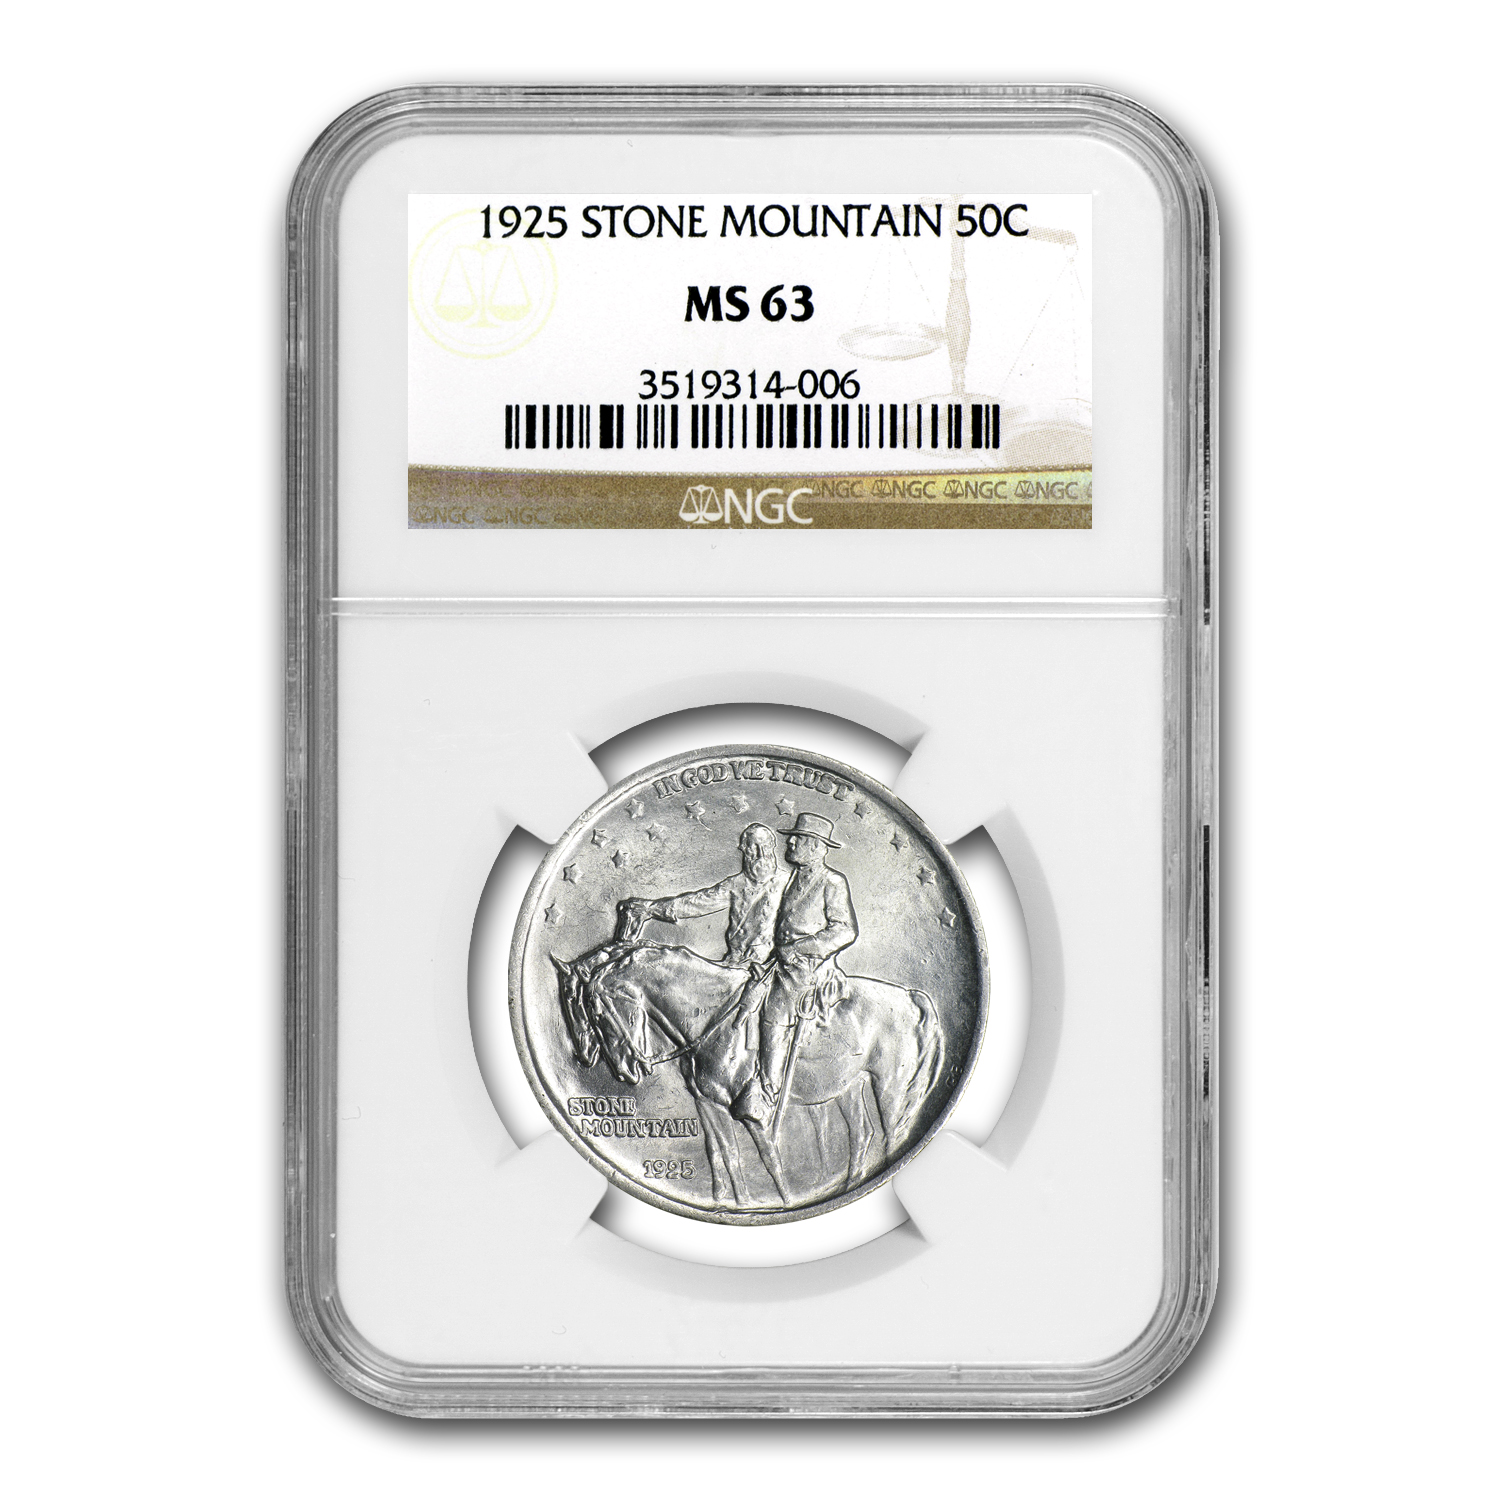 1925 Stone Mountain Memorial MS-63 NGC